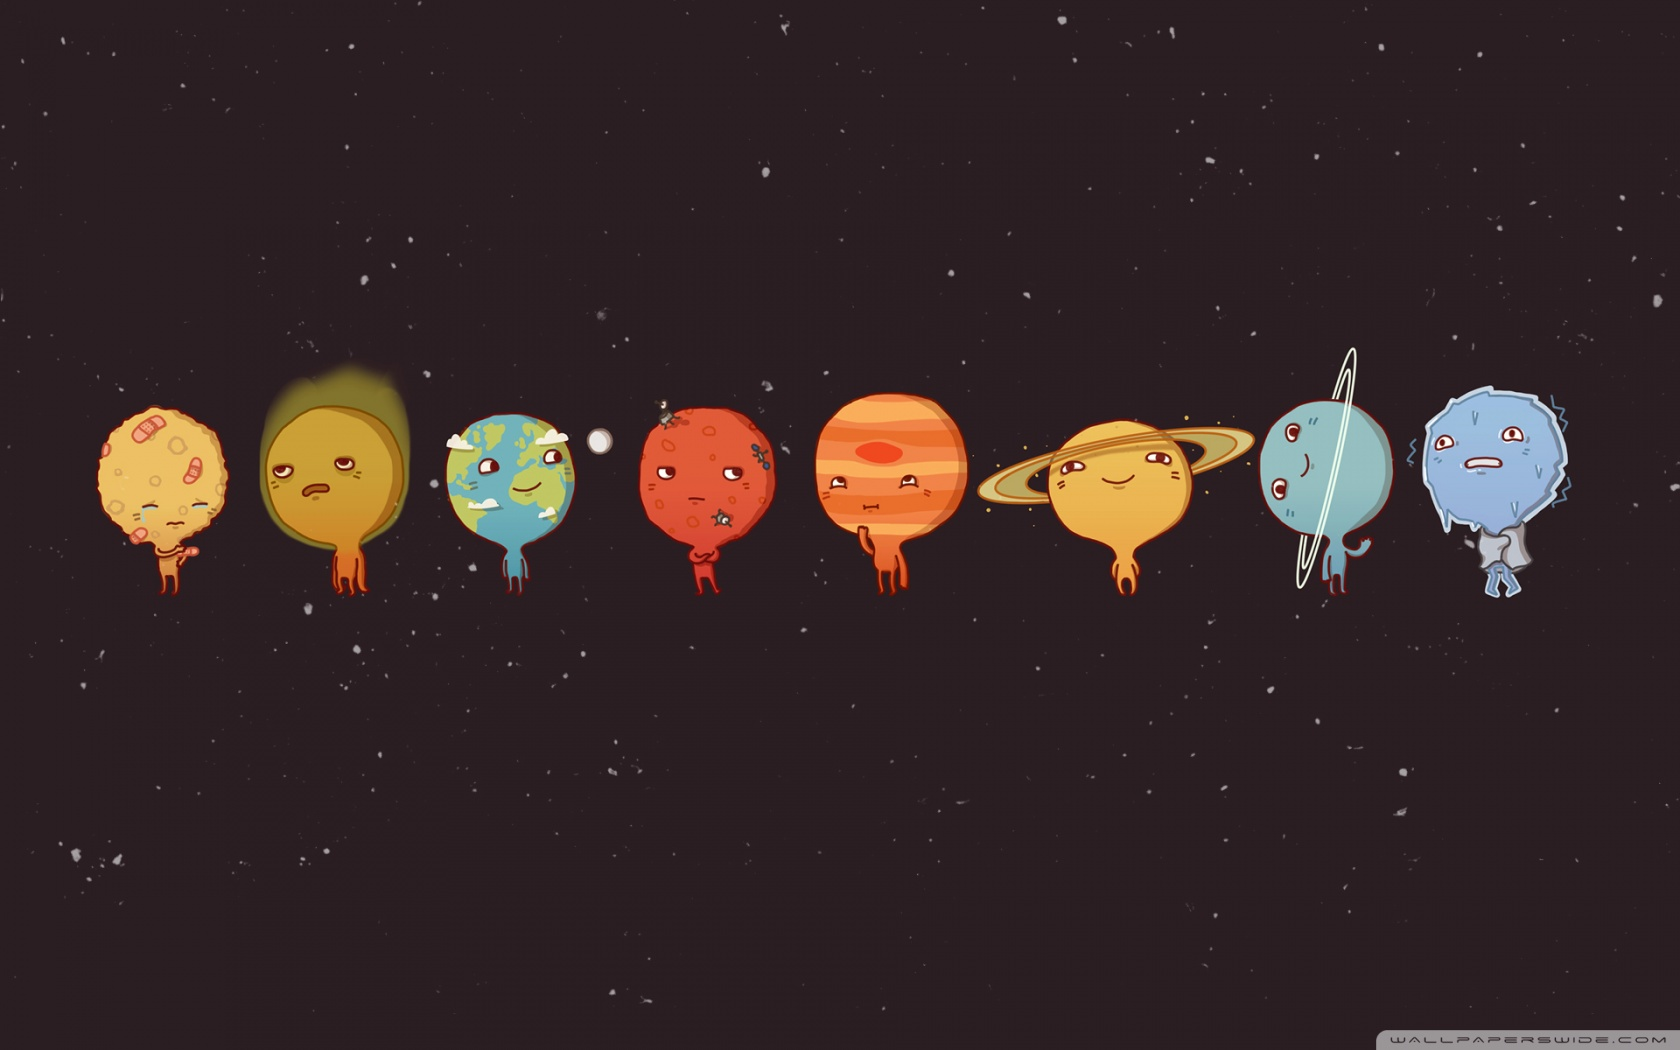 1680x1050 - Solar System Wallpapers 4